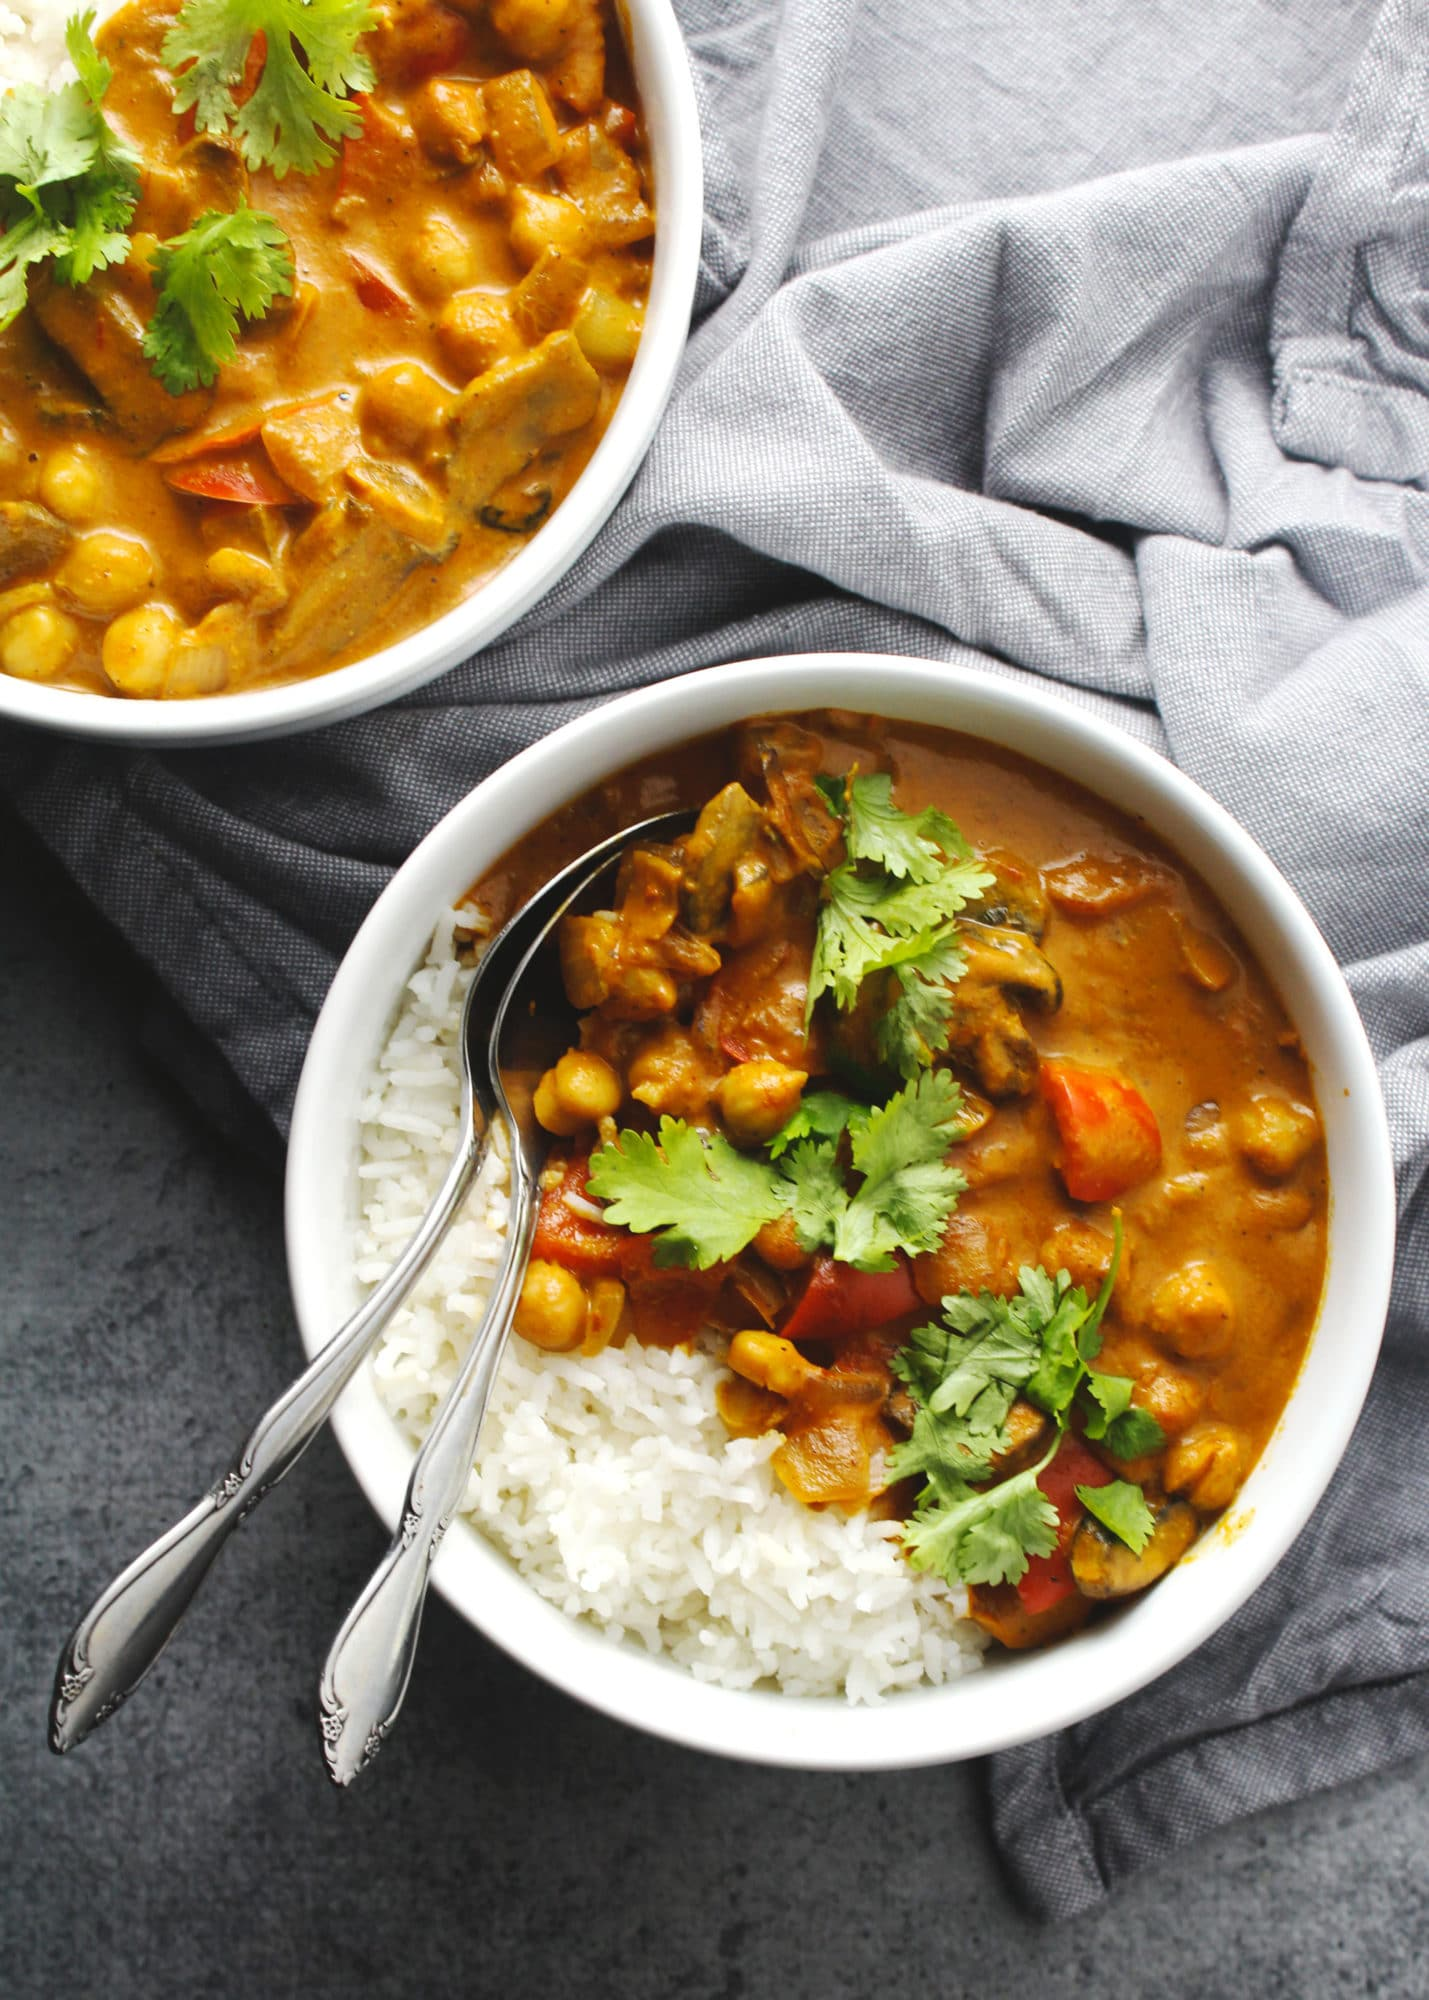 Vegetable Tikka Masala, because chicken doesn't have to have all the fun! This is a healthy and vegan take on a traditional Indian dish | via @AimeeMarsLiving | #Vegetable #Tikka #Masala #Vegan